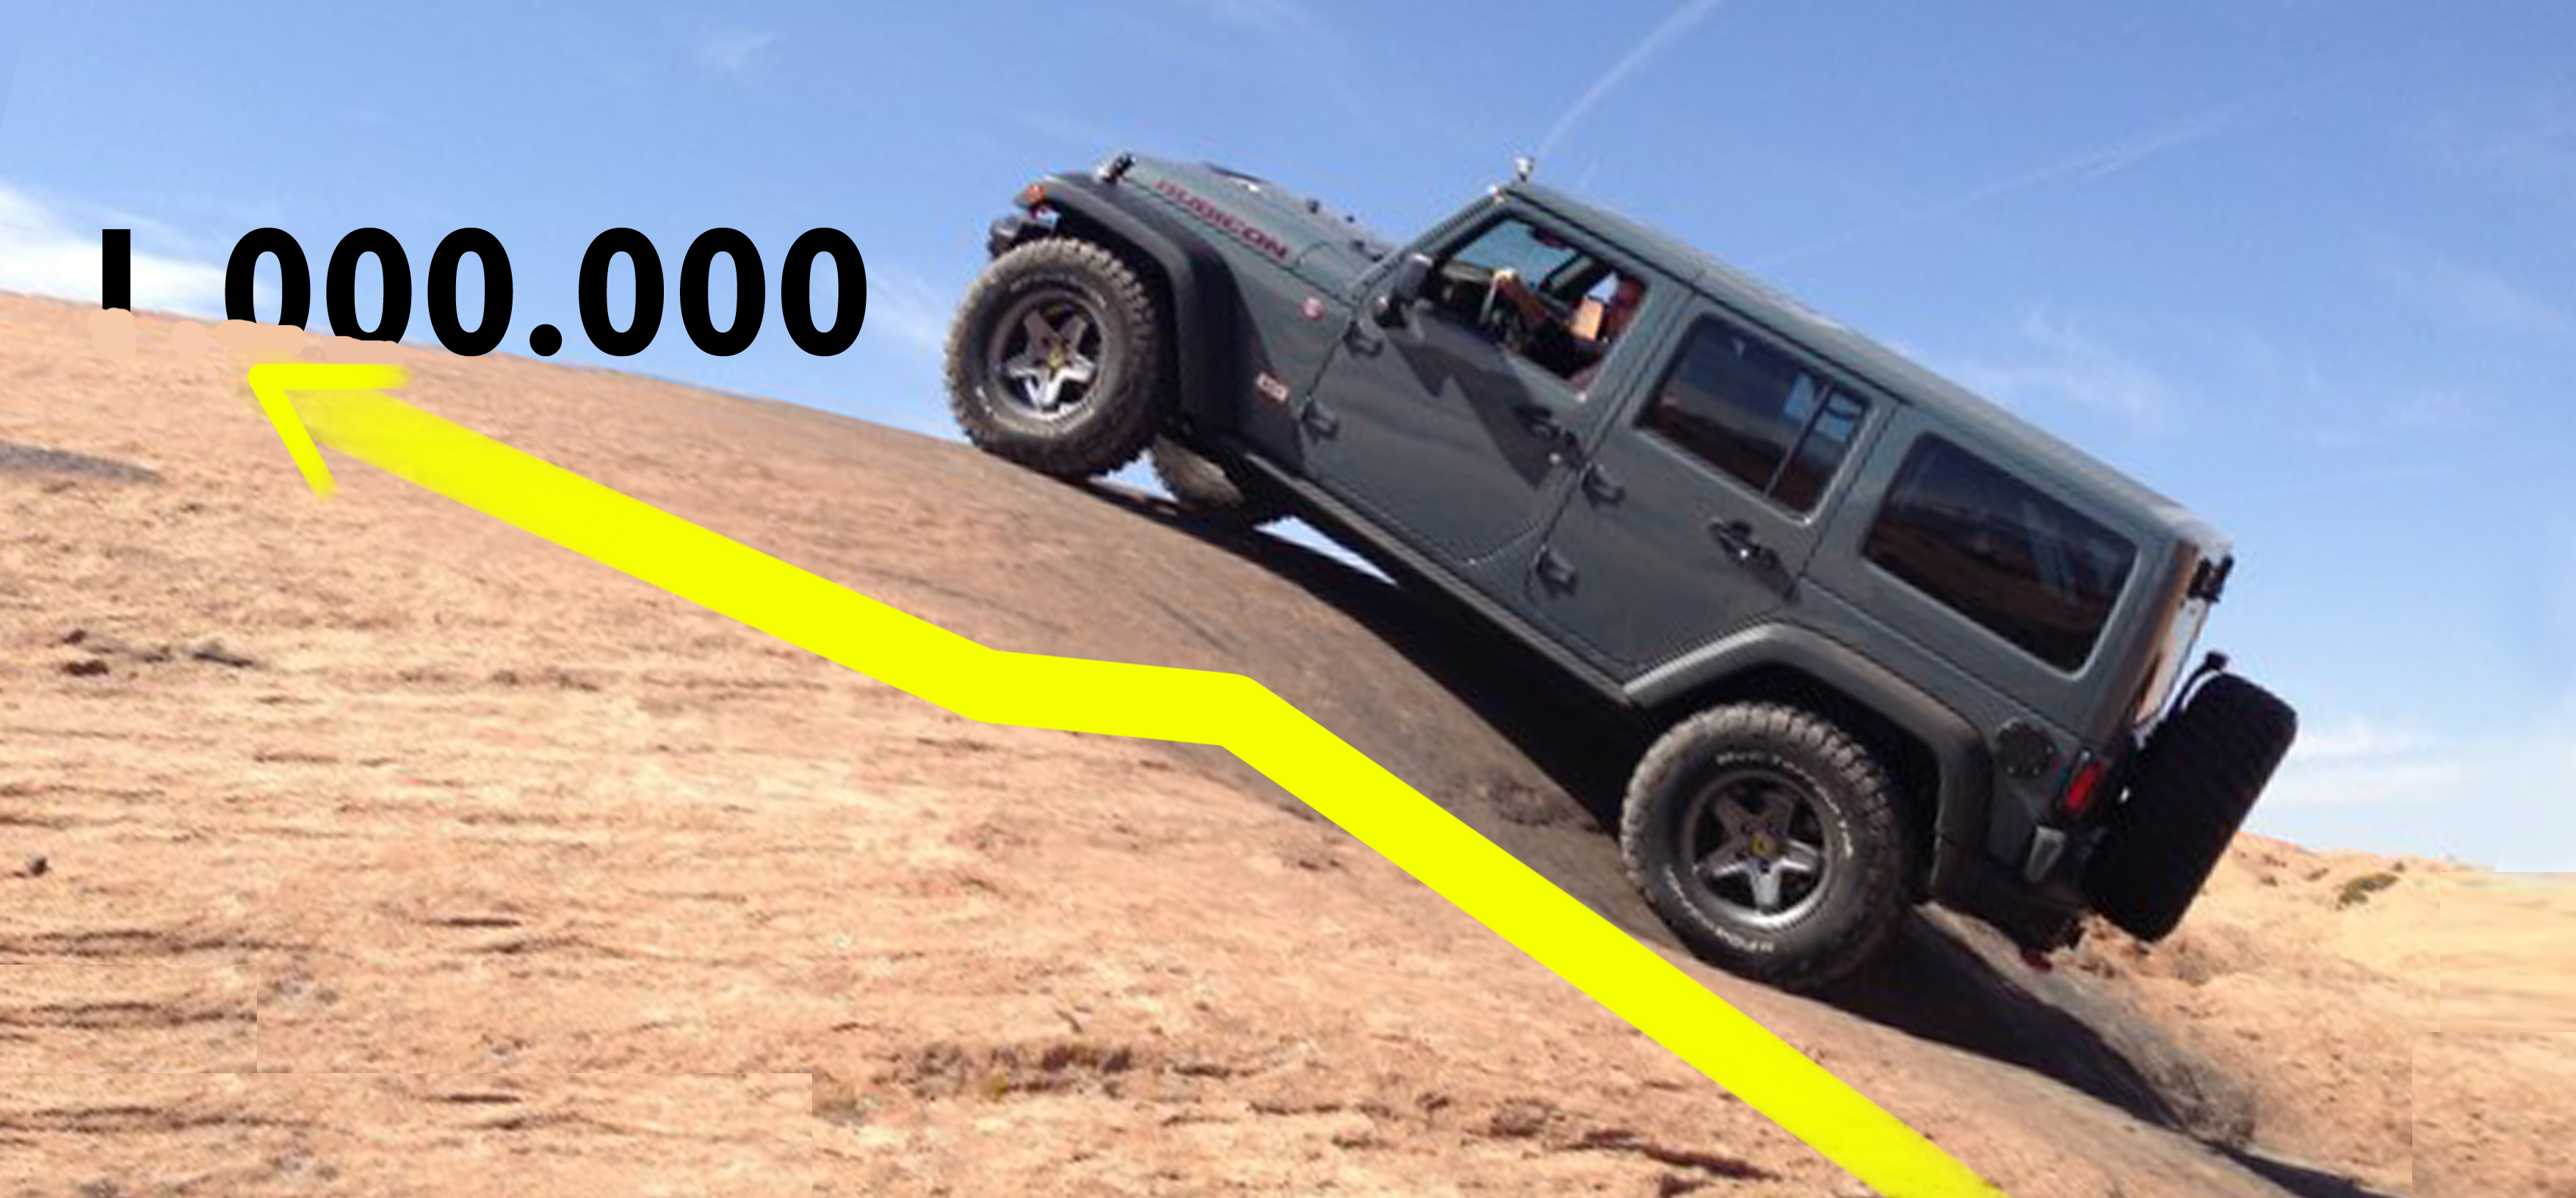 Jeep 2014 H1 results on the right way to the 1 million units goal